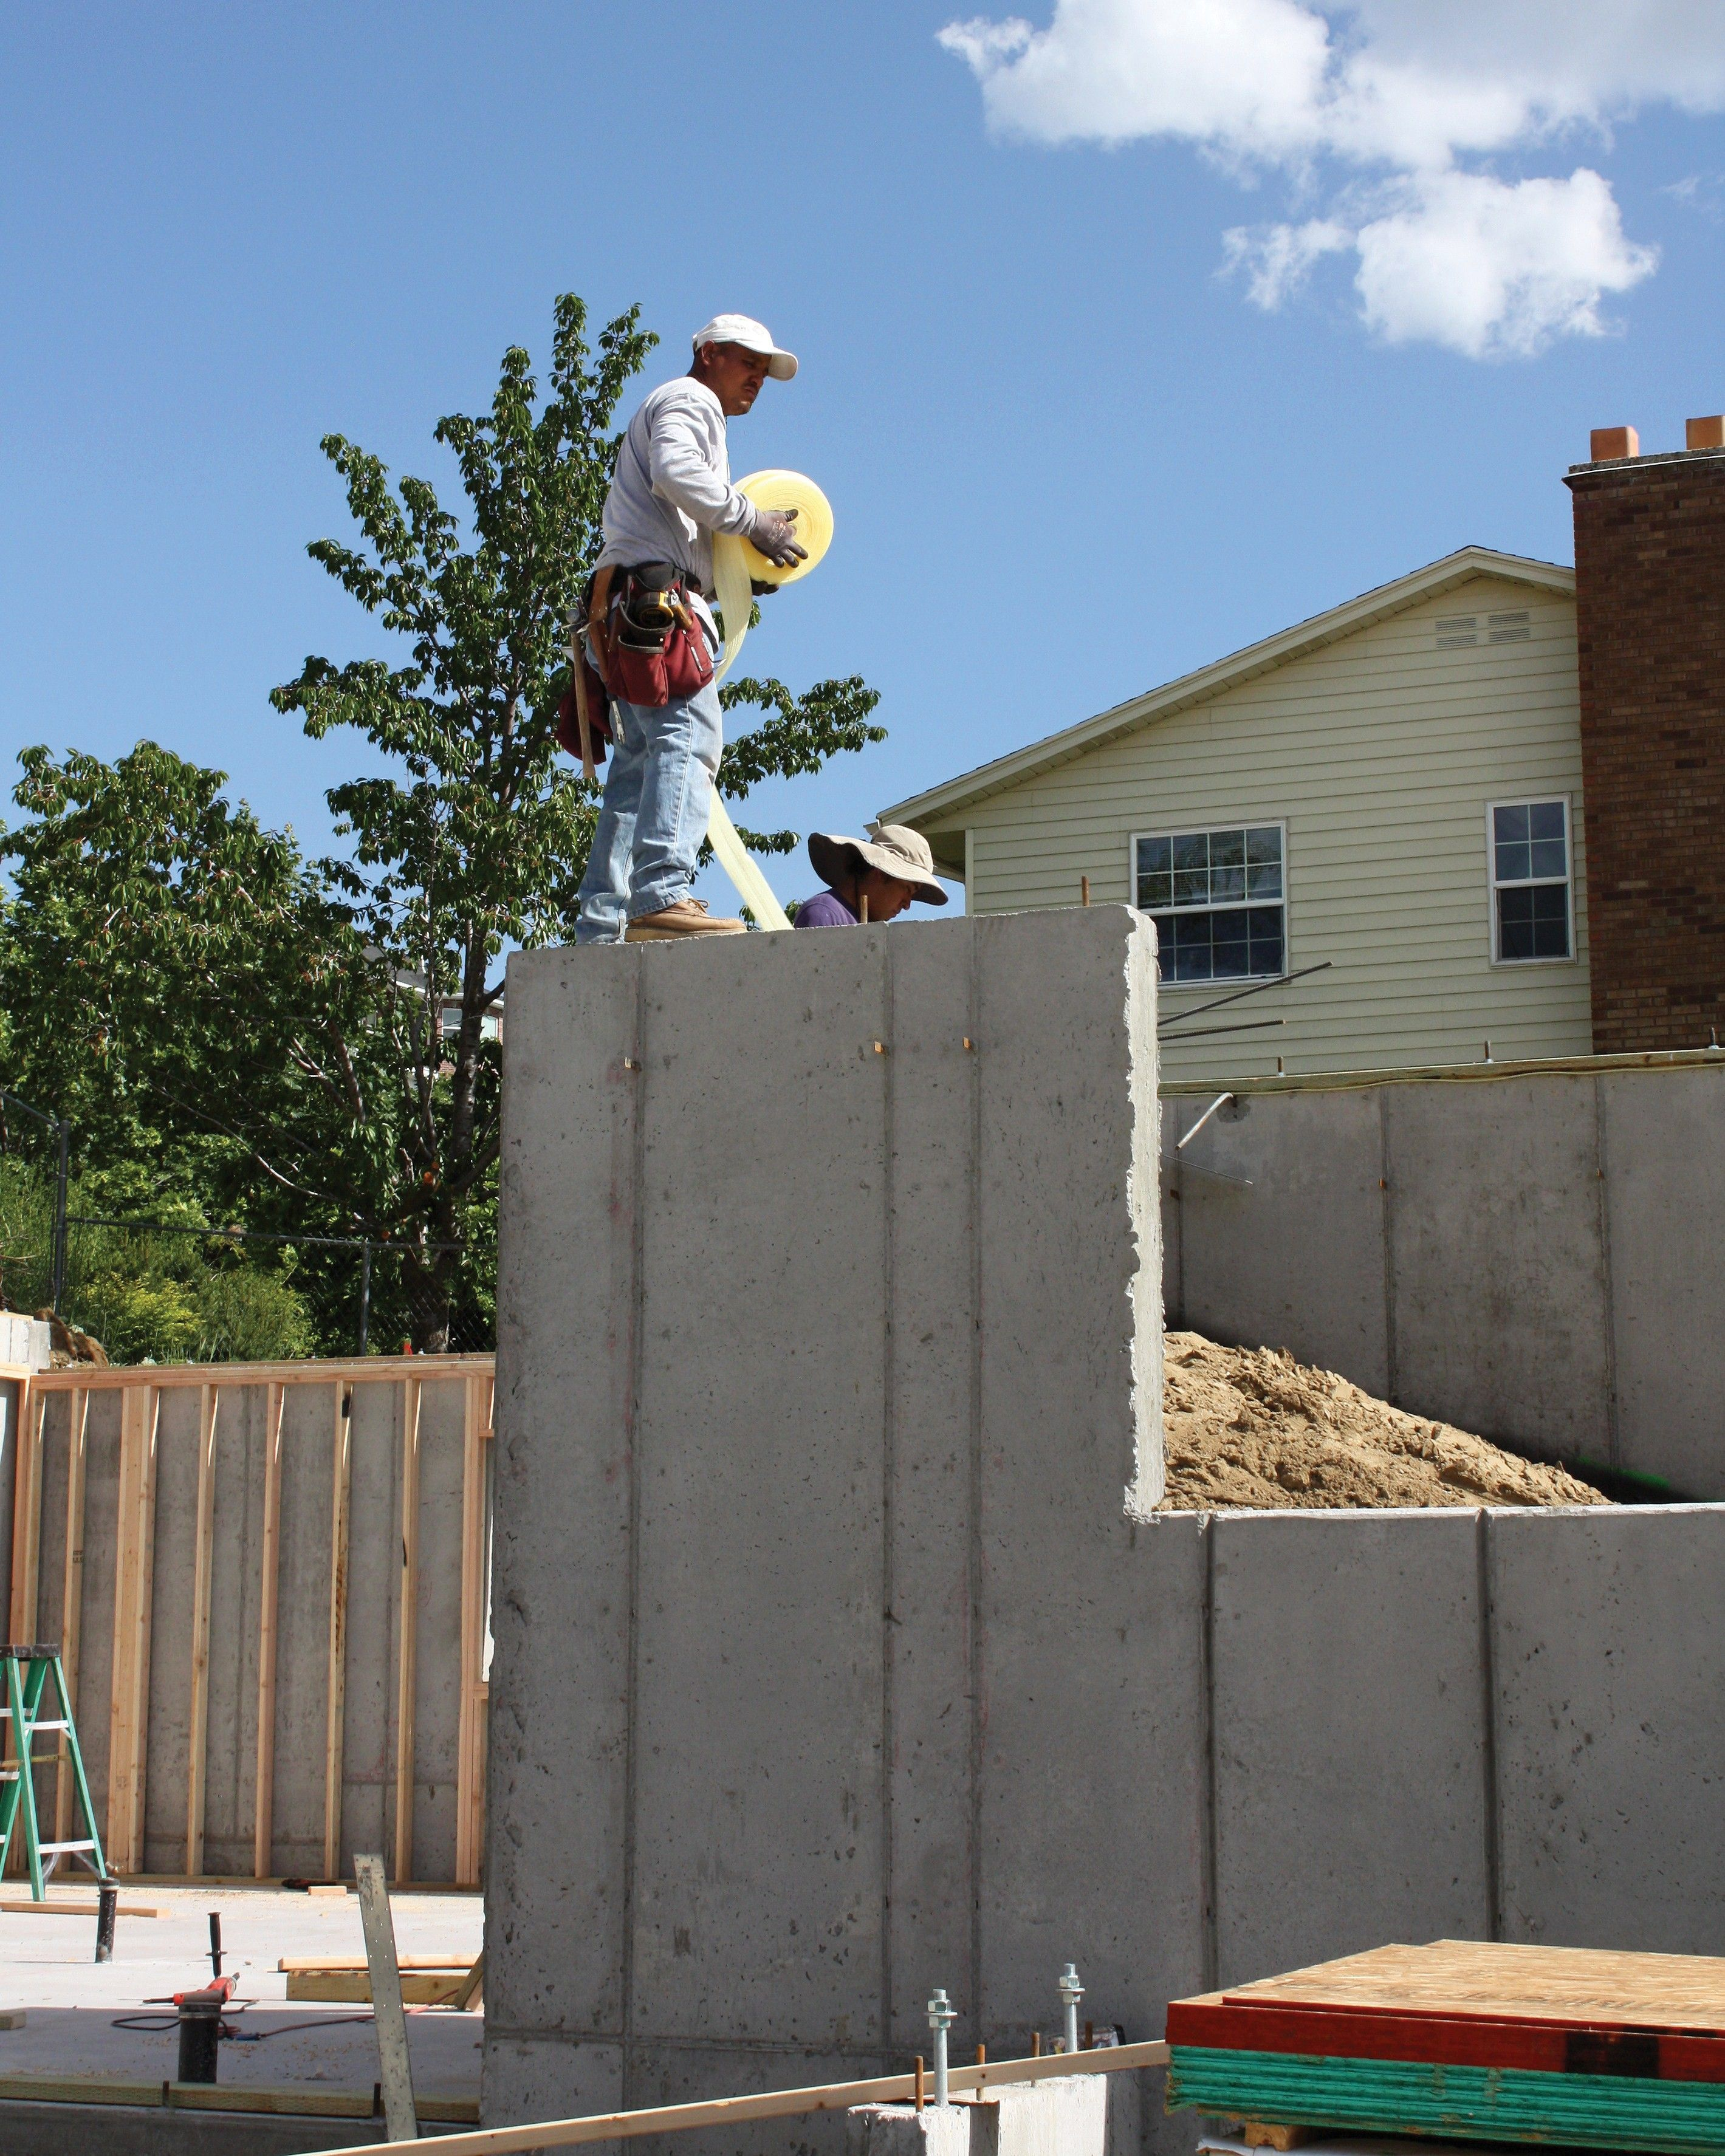 Workers building houses with concrete foundations.